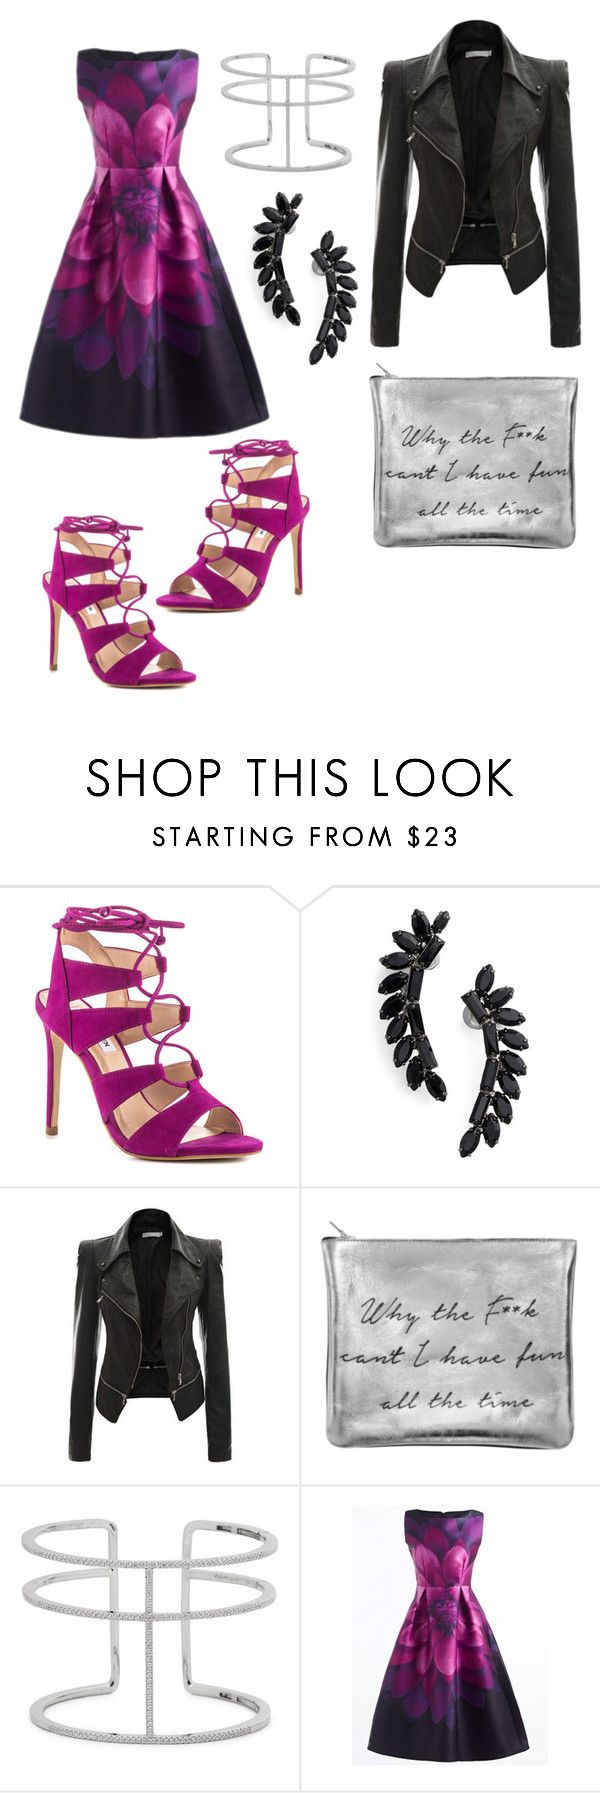 """Rock star!"" by dianavillalobos on Polyvore featuring Steve Madden, Cristabelle and APM Monaco"